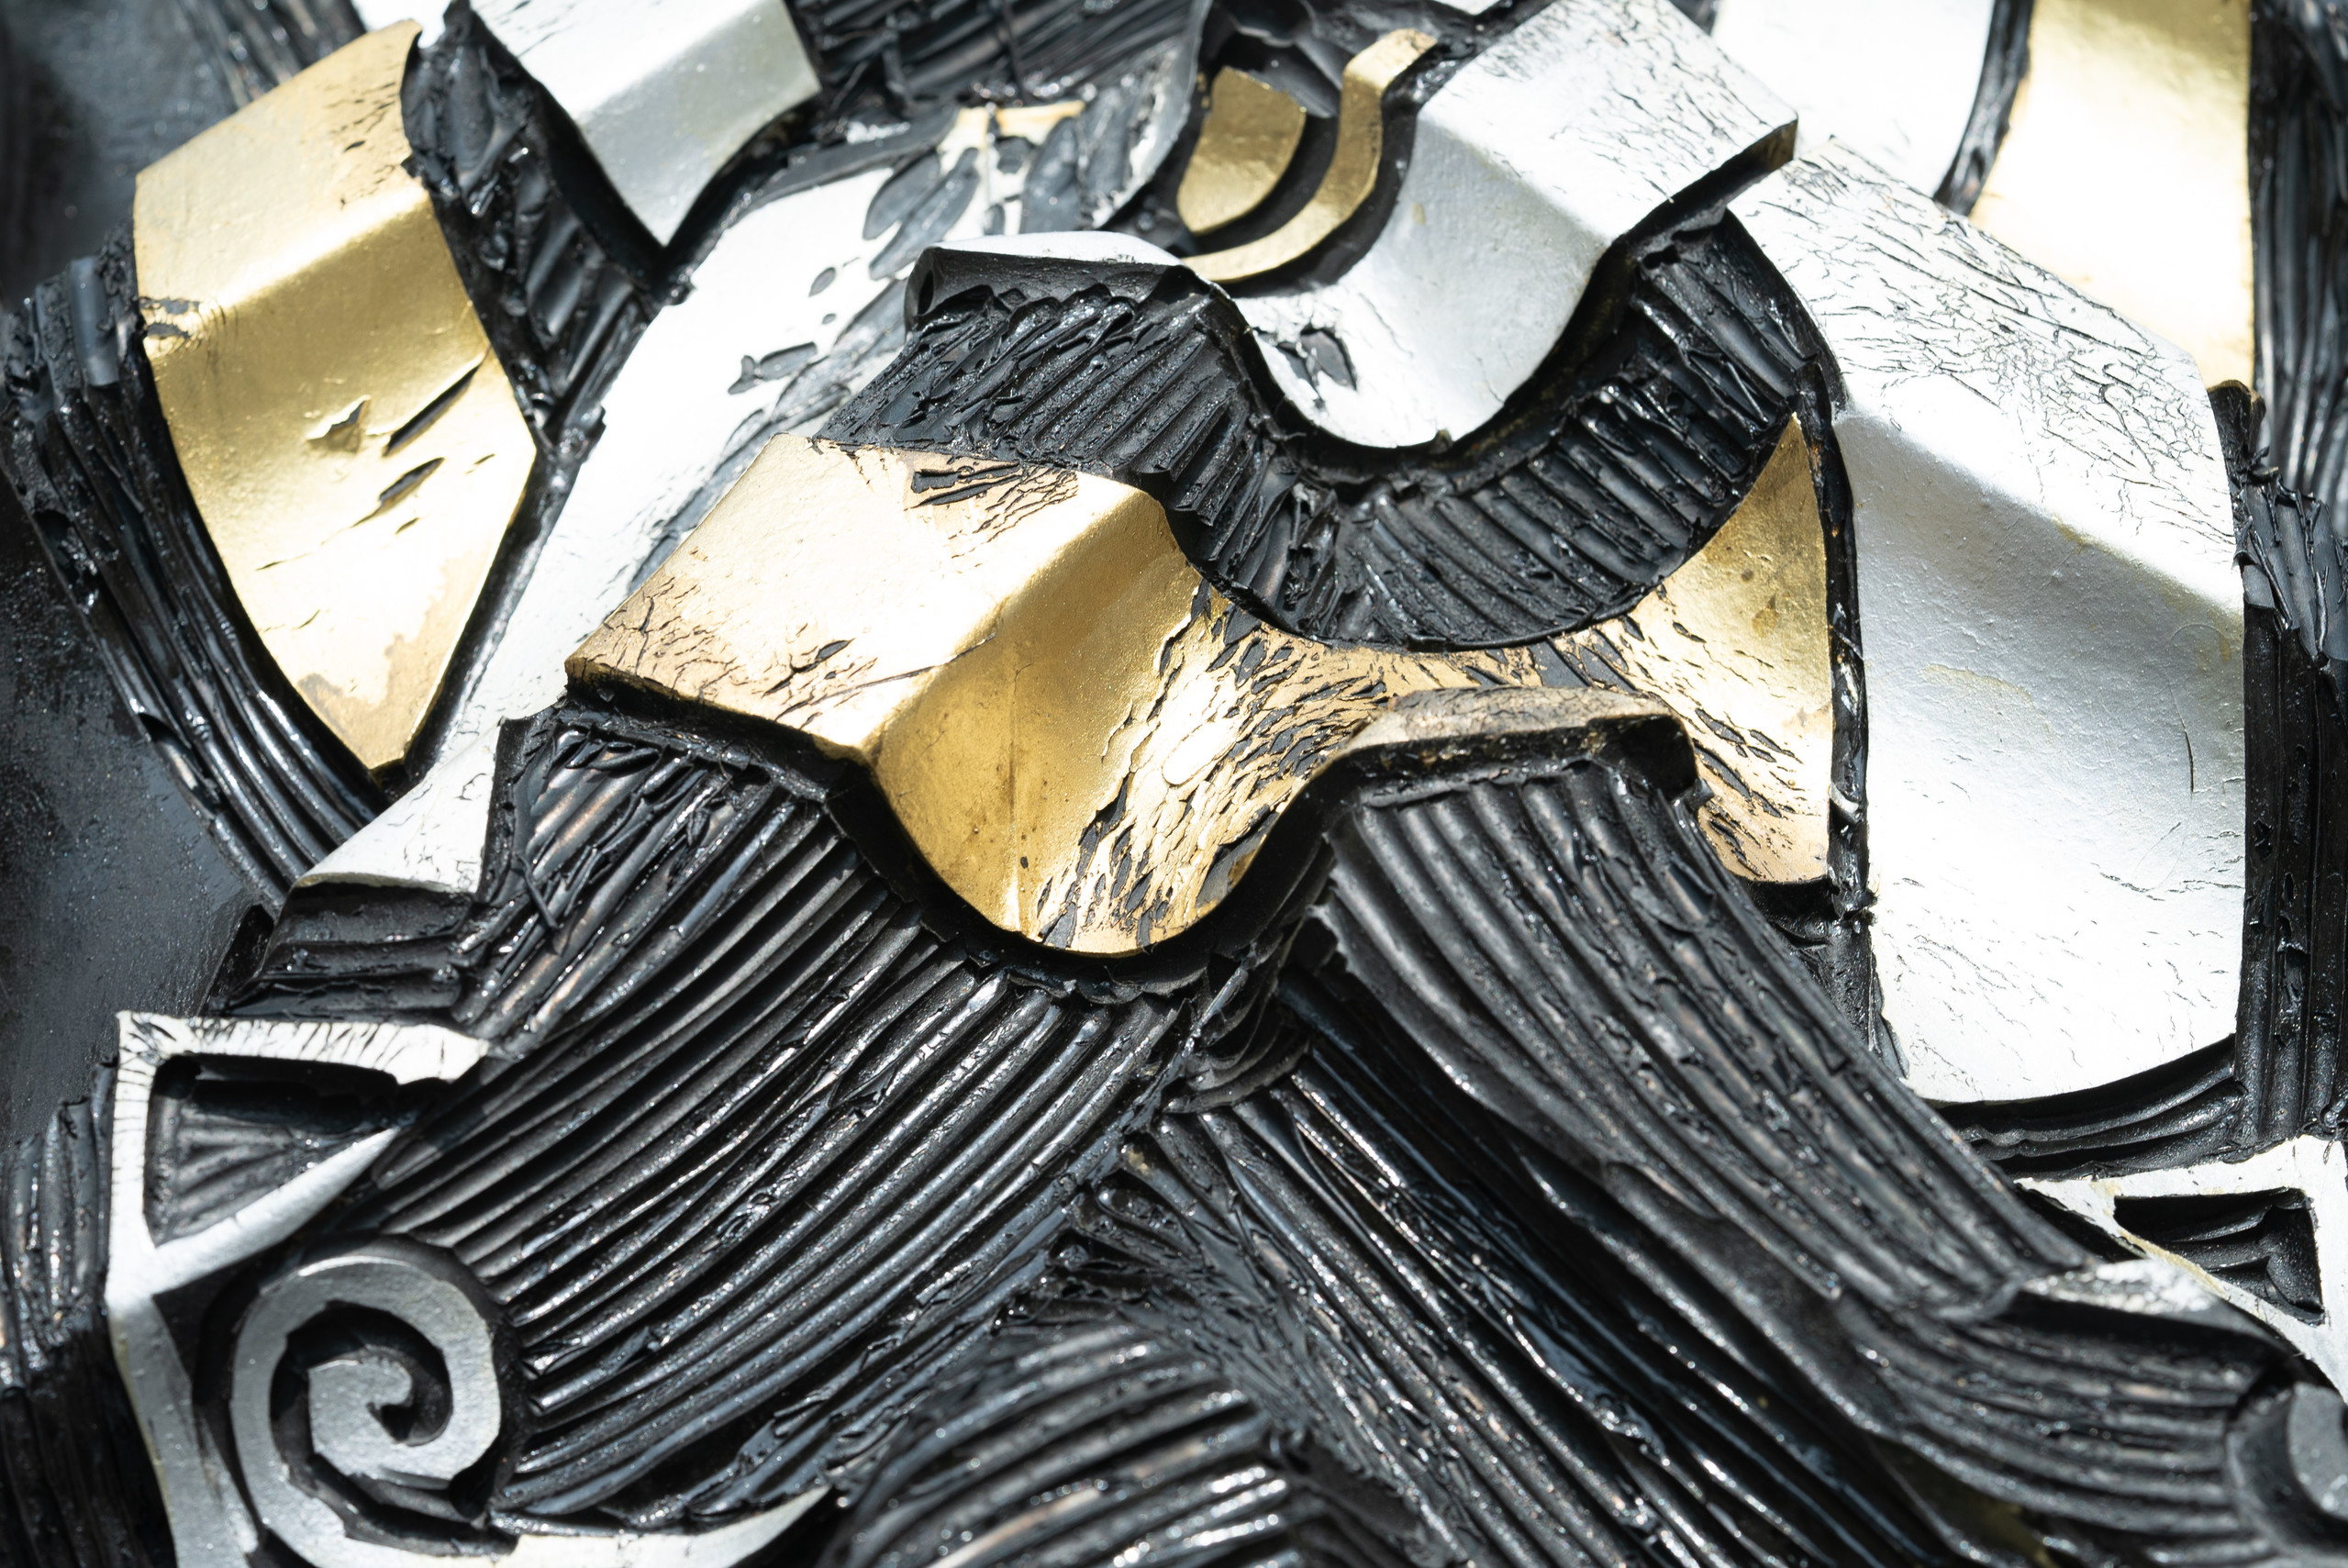 Closeup detail of an engraved tire with peeling ribbons of gold and silver leaf intertwined with varying directions of ribbed black lines.